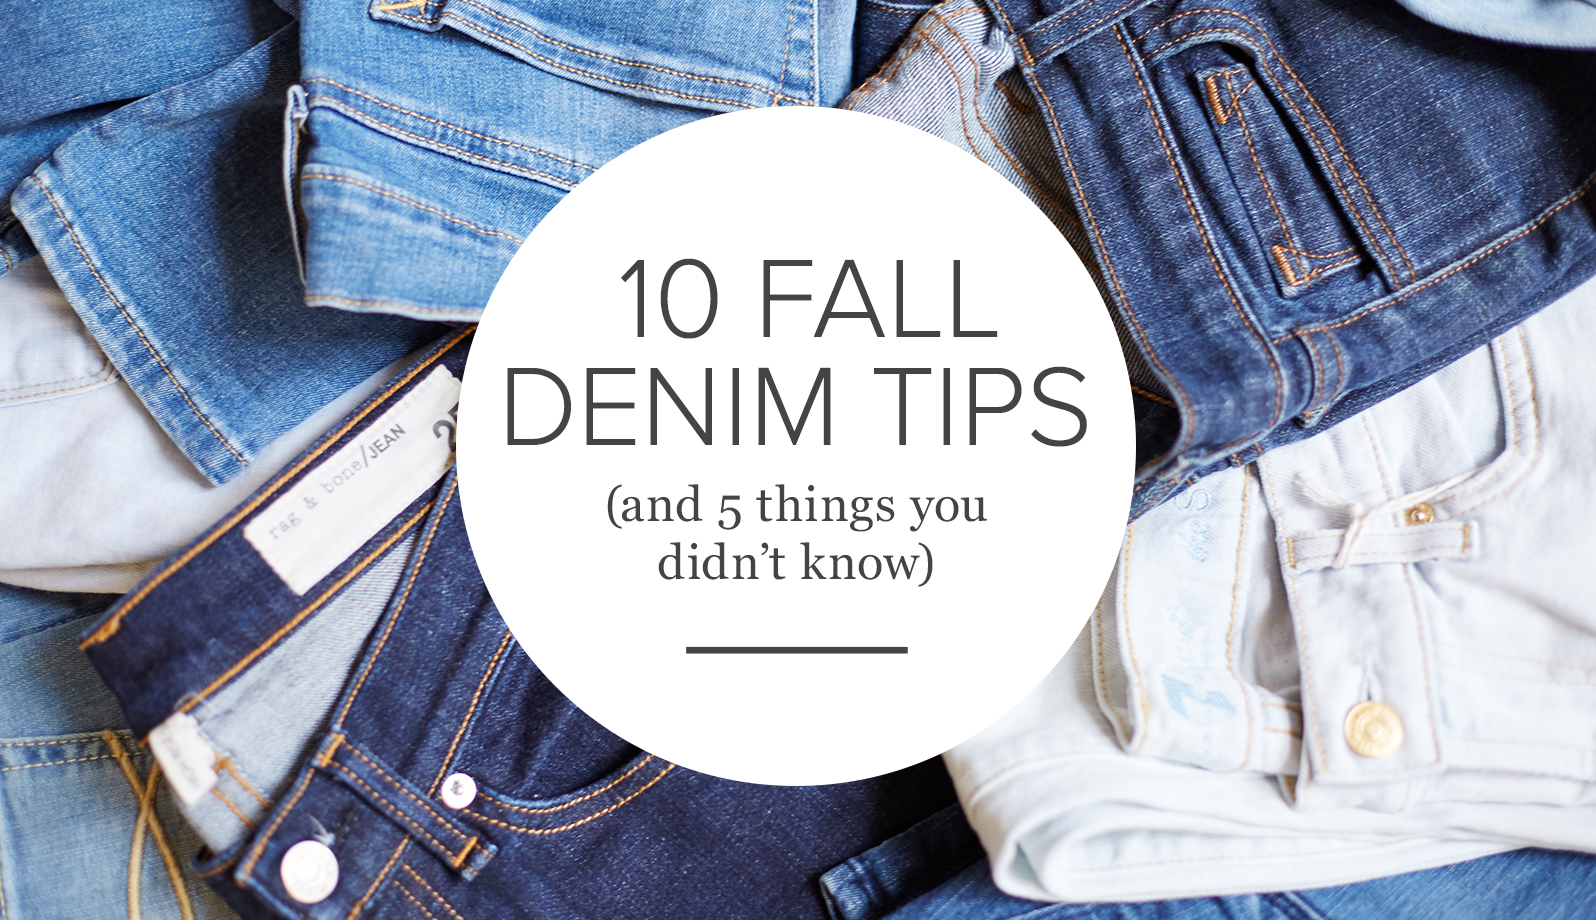 091016_fallDenimTips_blogFeaturedImage.jpg